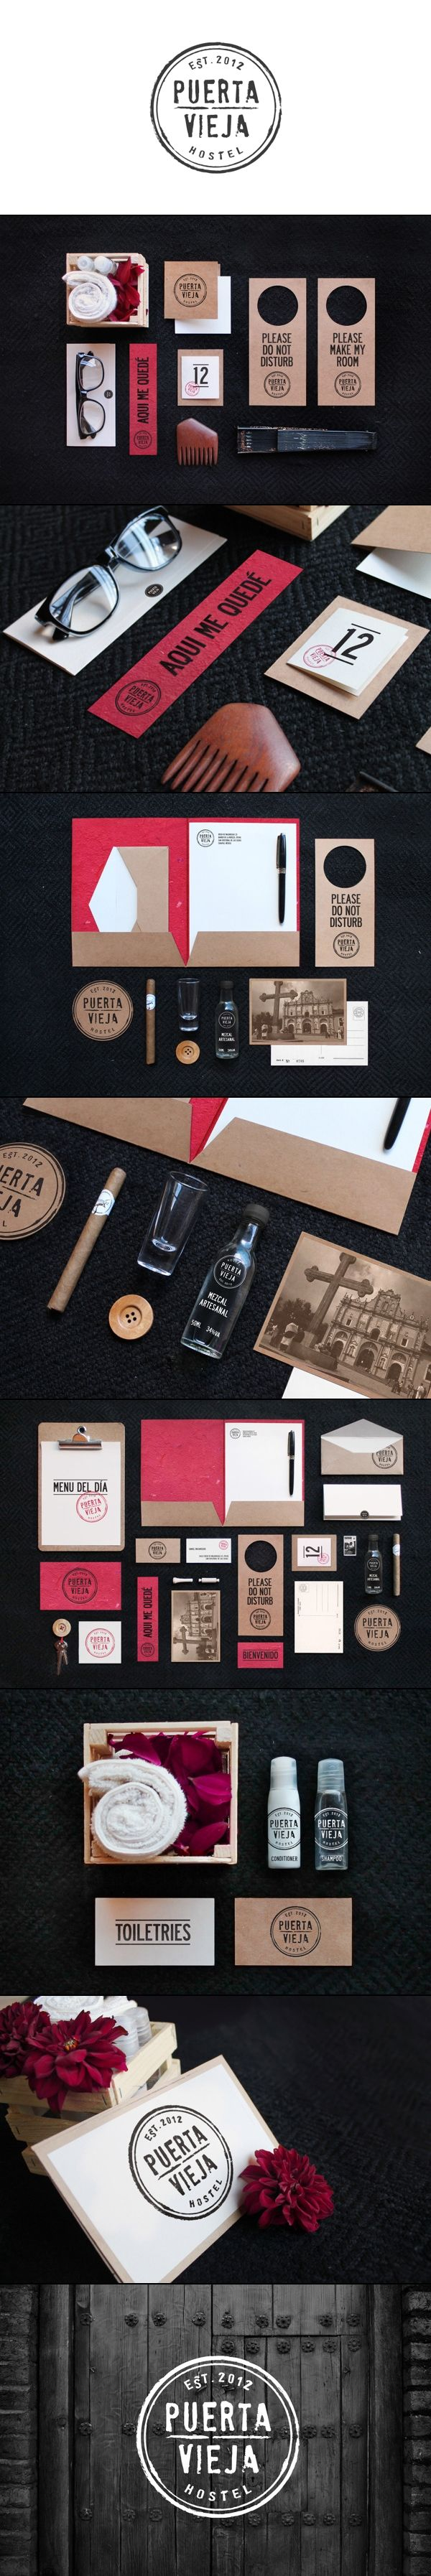 Graphic corporate design stationary business card packaging and marketing material. Patriushka Orts